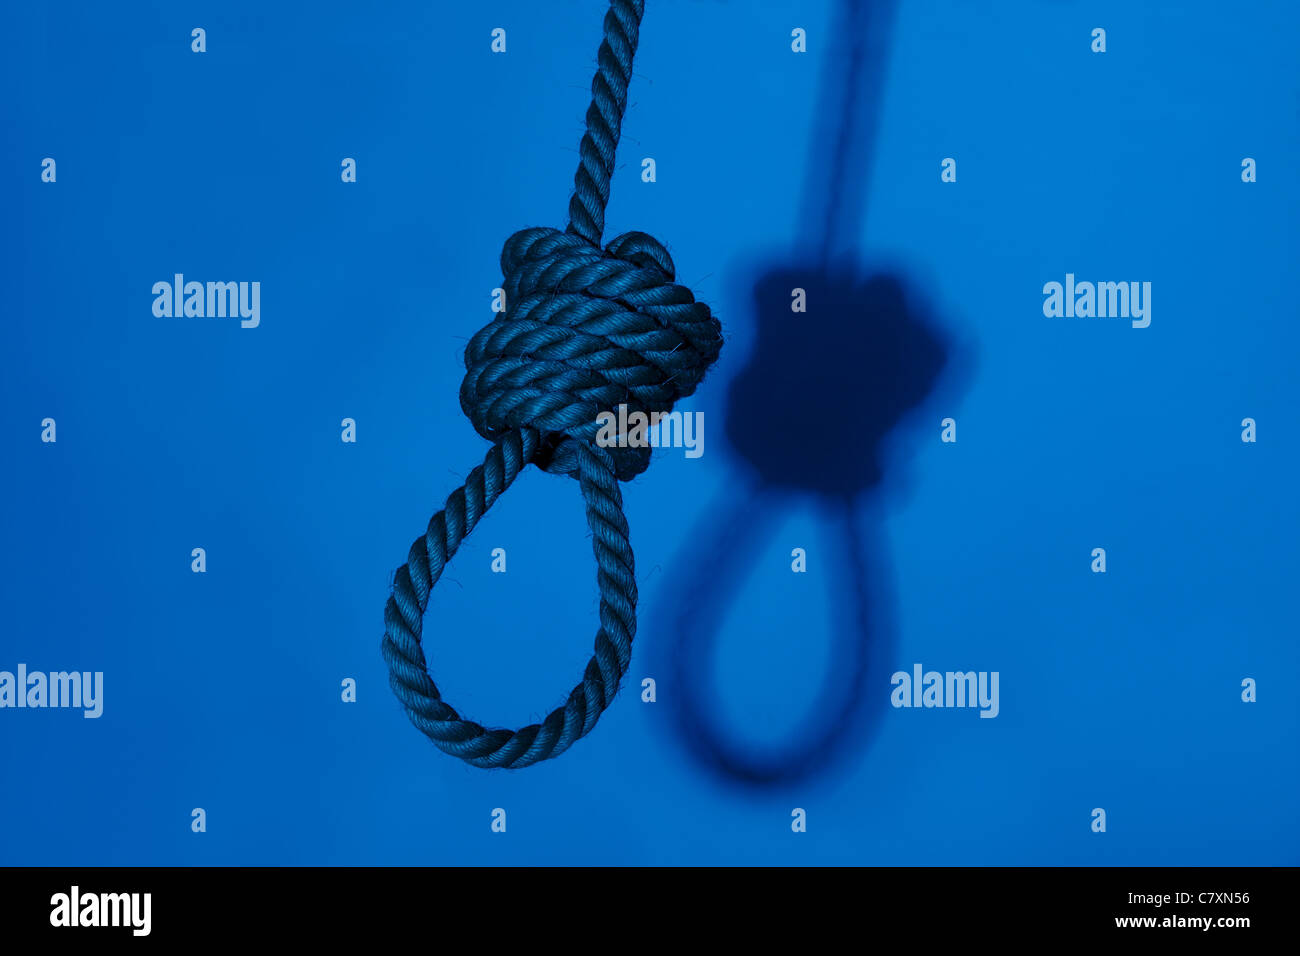 A night shot of a noose with background shadow - Stock Image